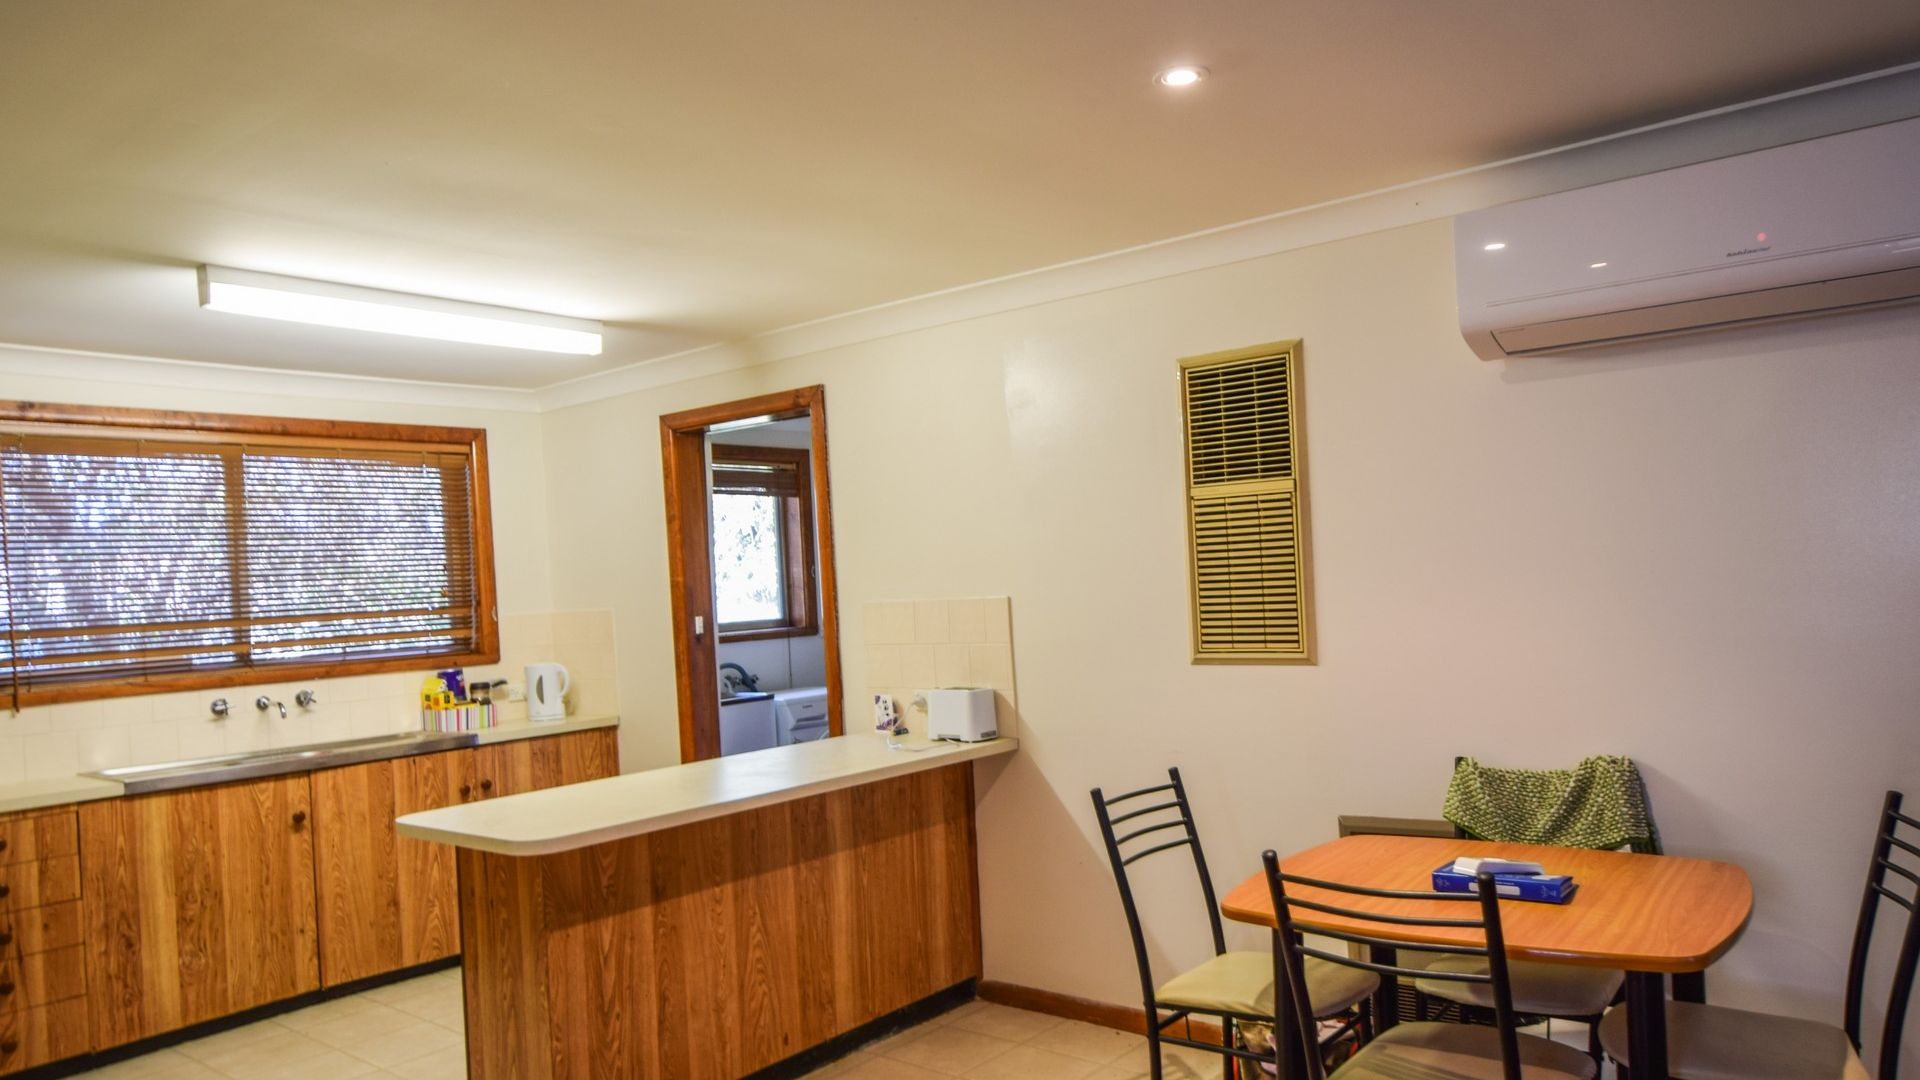 4/57 Brock St, Young NSW 2594, Image 1